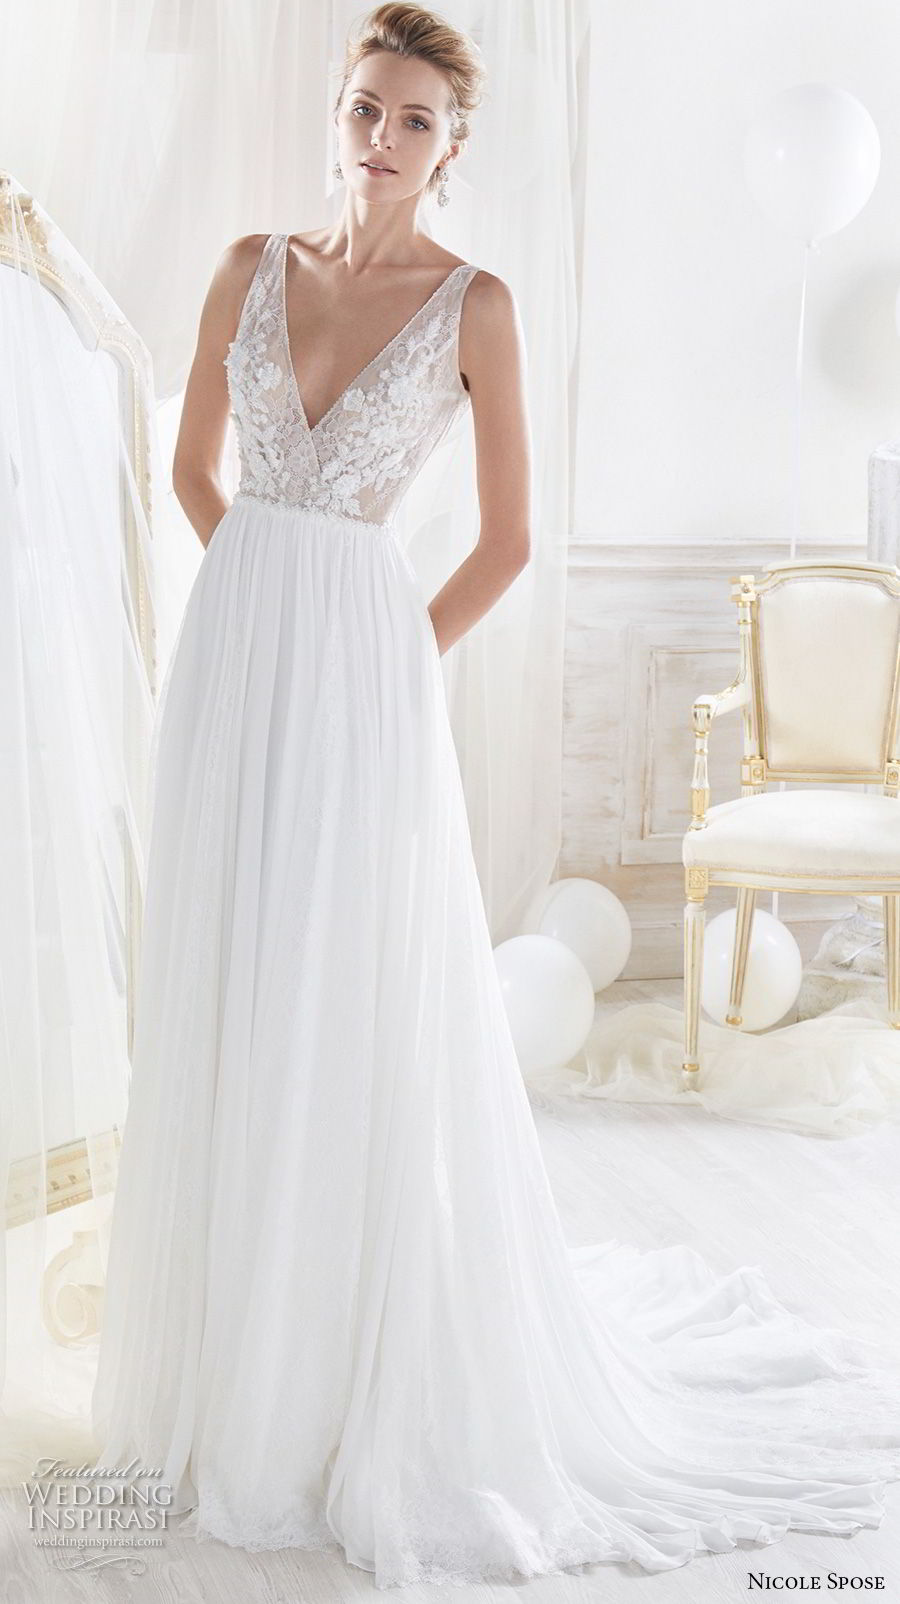 nicole spose 2018 bridal sleeveless deep v neck heavily embelliished bodice romantic soft a line wedding dress open v back chapel train (10) mv